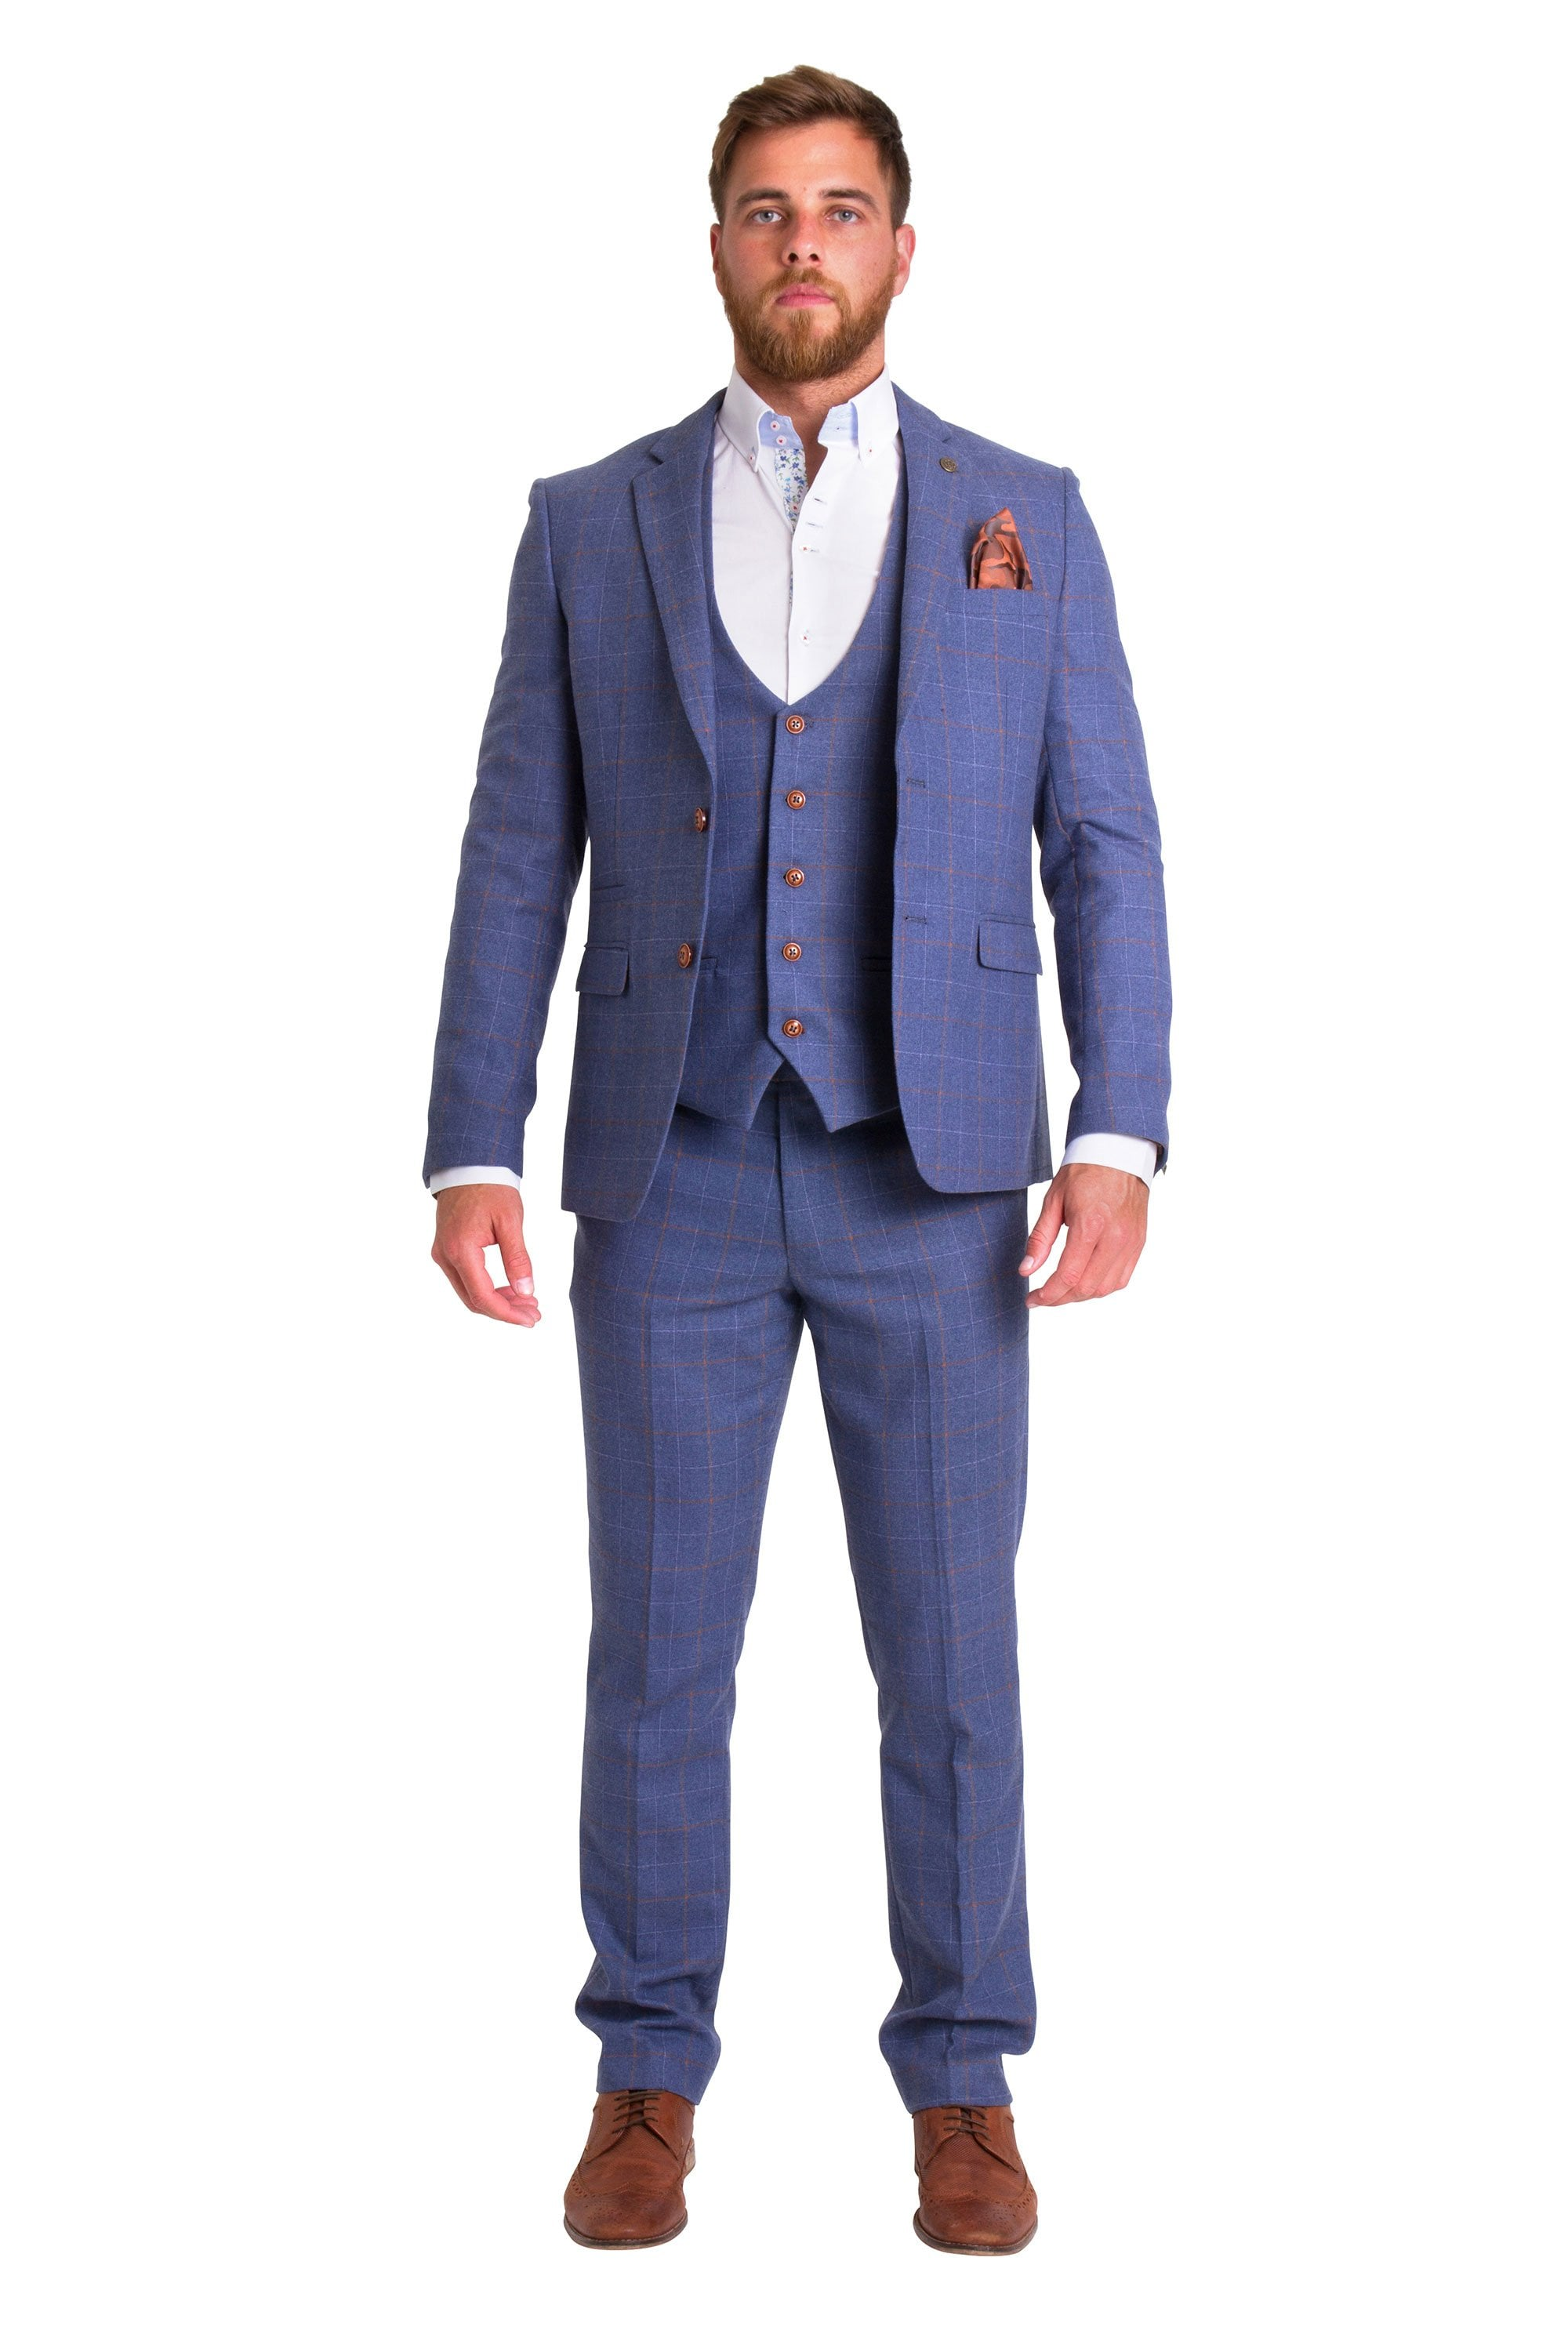 official store outlet buy Marc Darcy Marc Darcy Matthew Blue Tweed Blazer